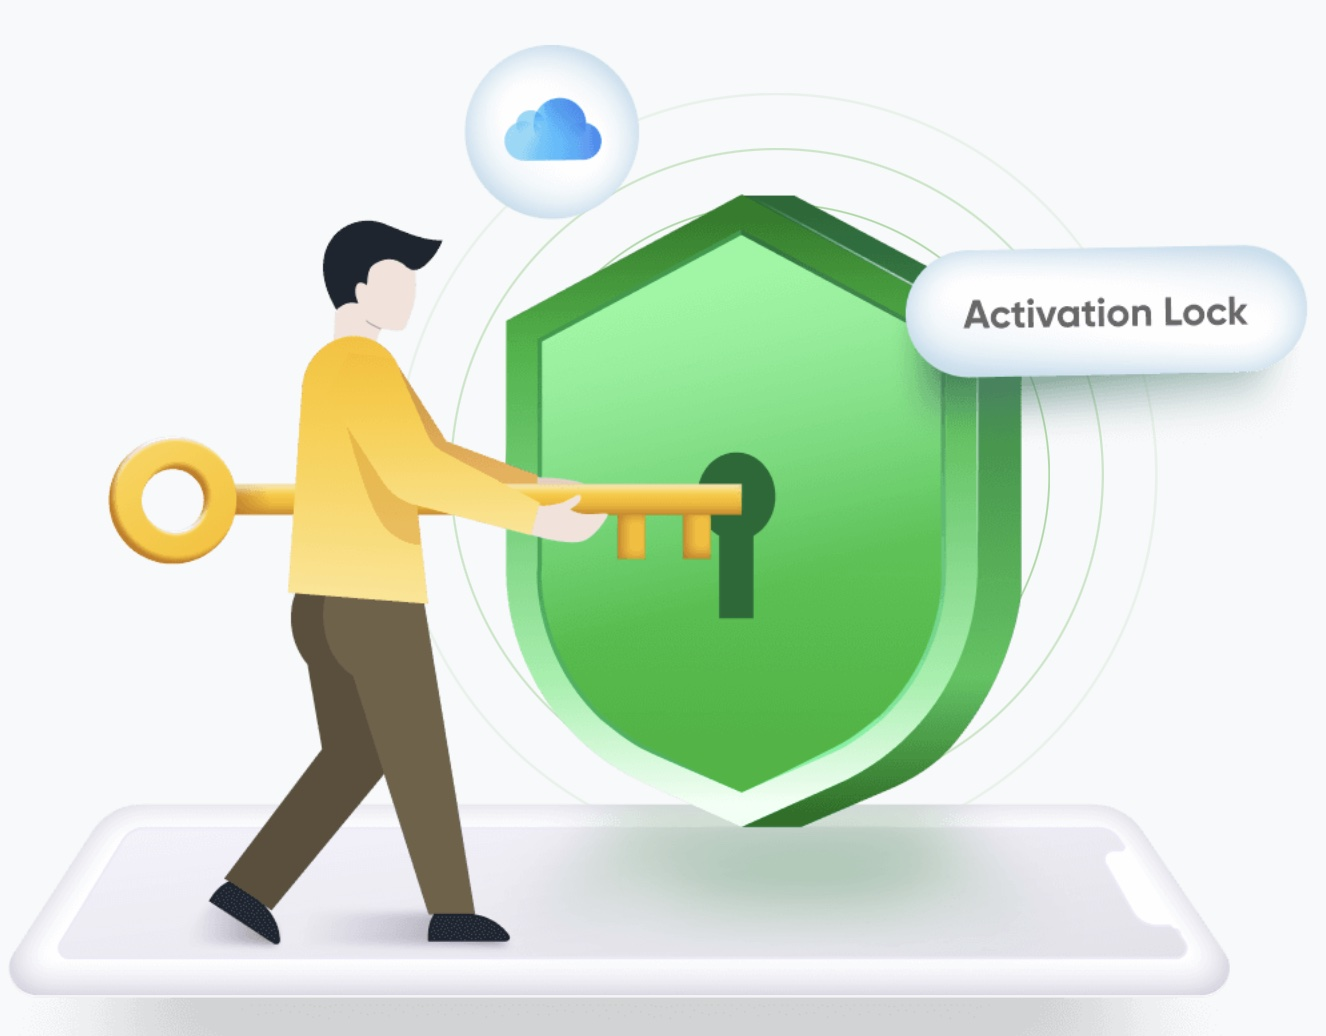 How to remove iCloud activation lock without a password with PassFab Activation Unlocker